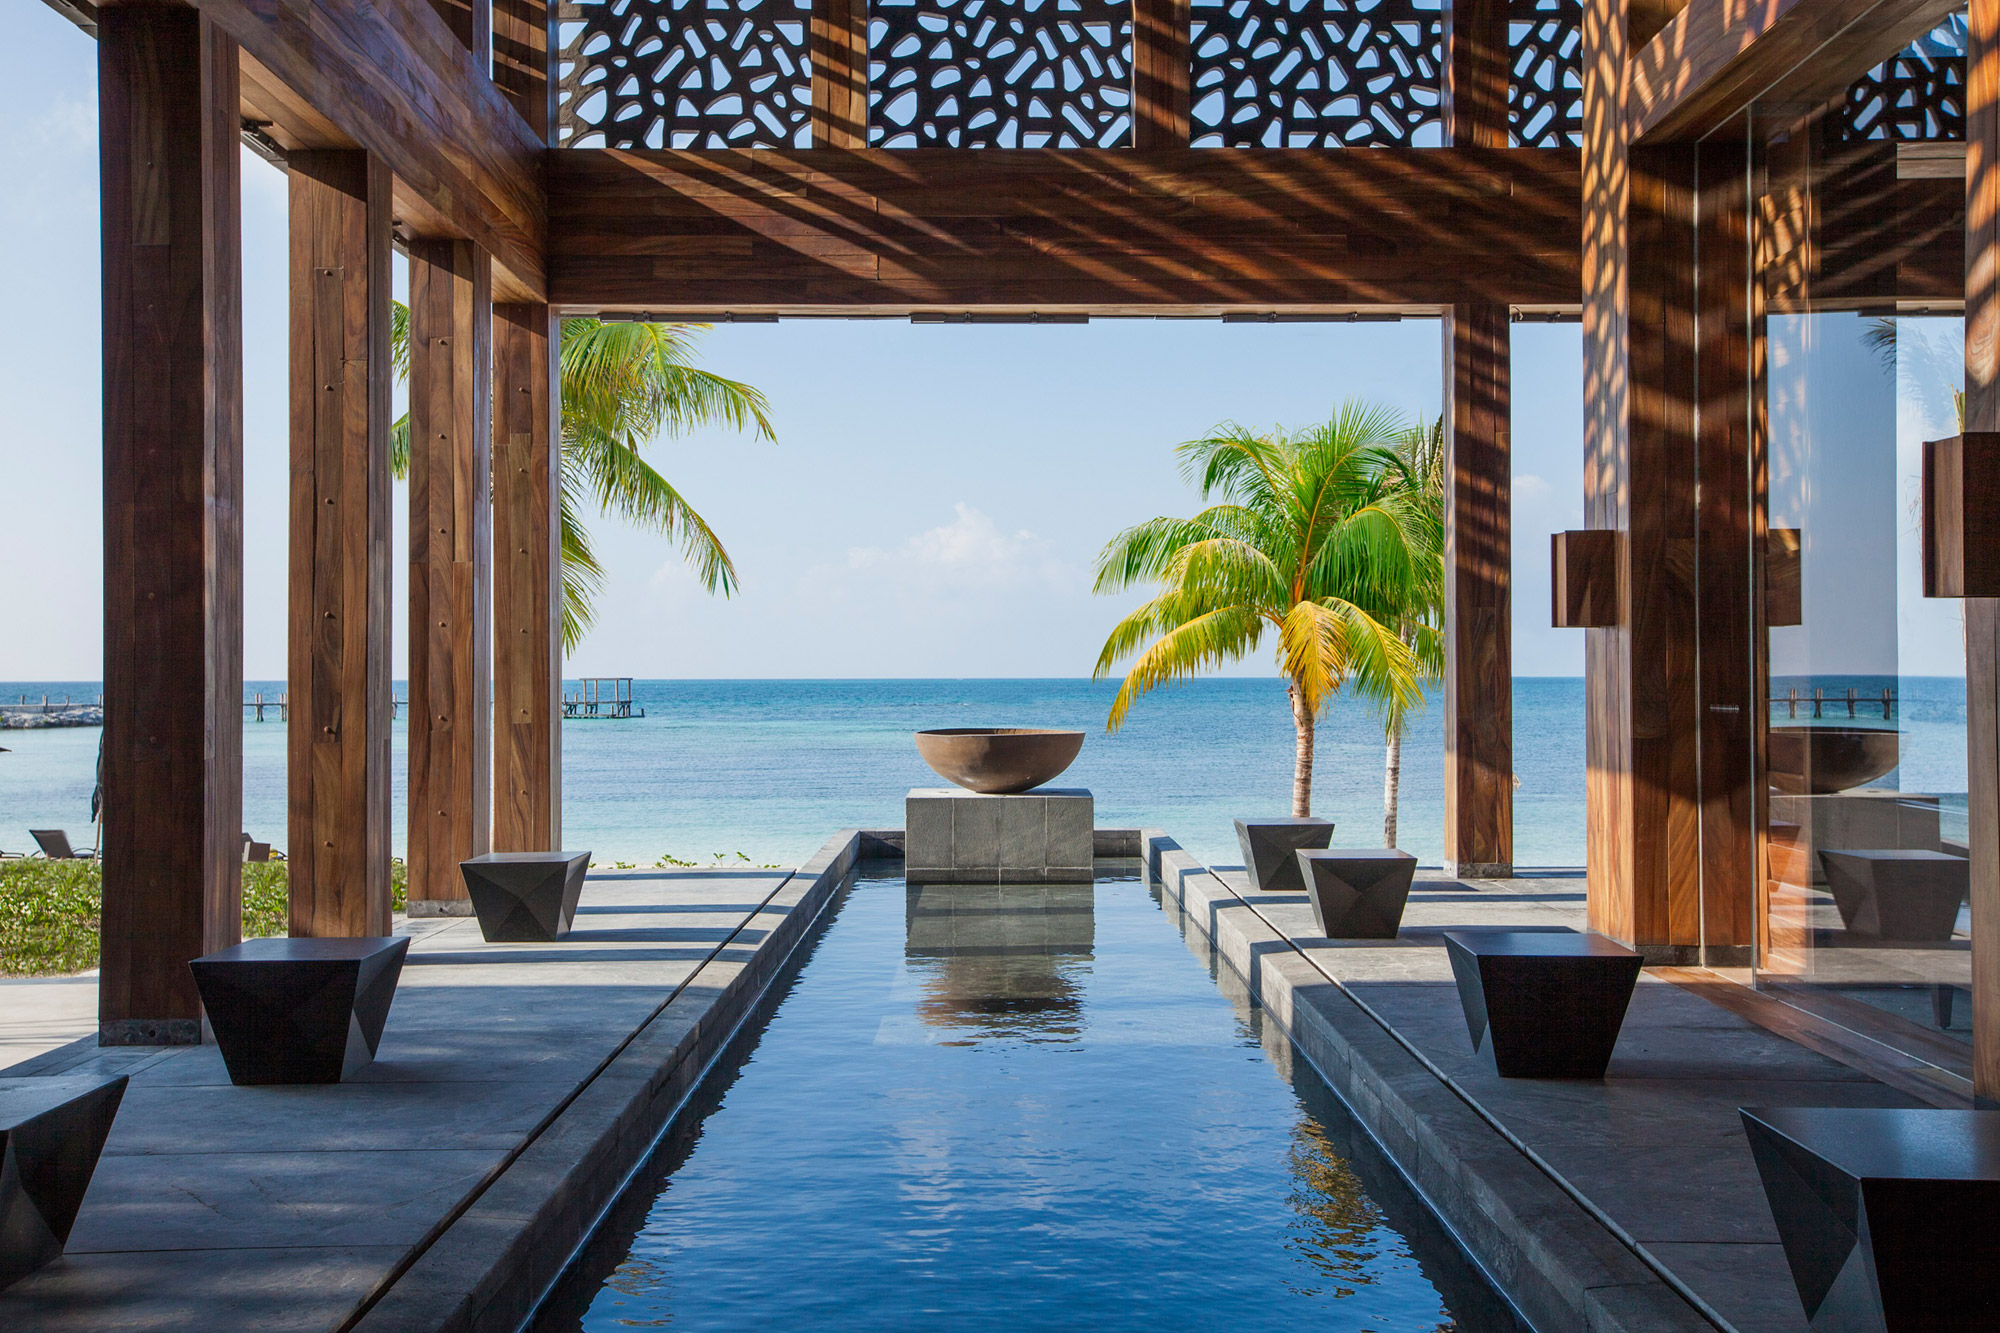 View over a channel water feature amongst wooden pillars out to palms and the sea